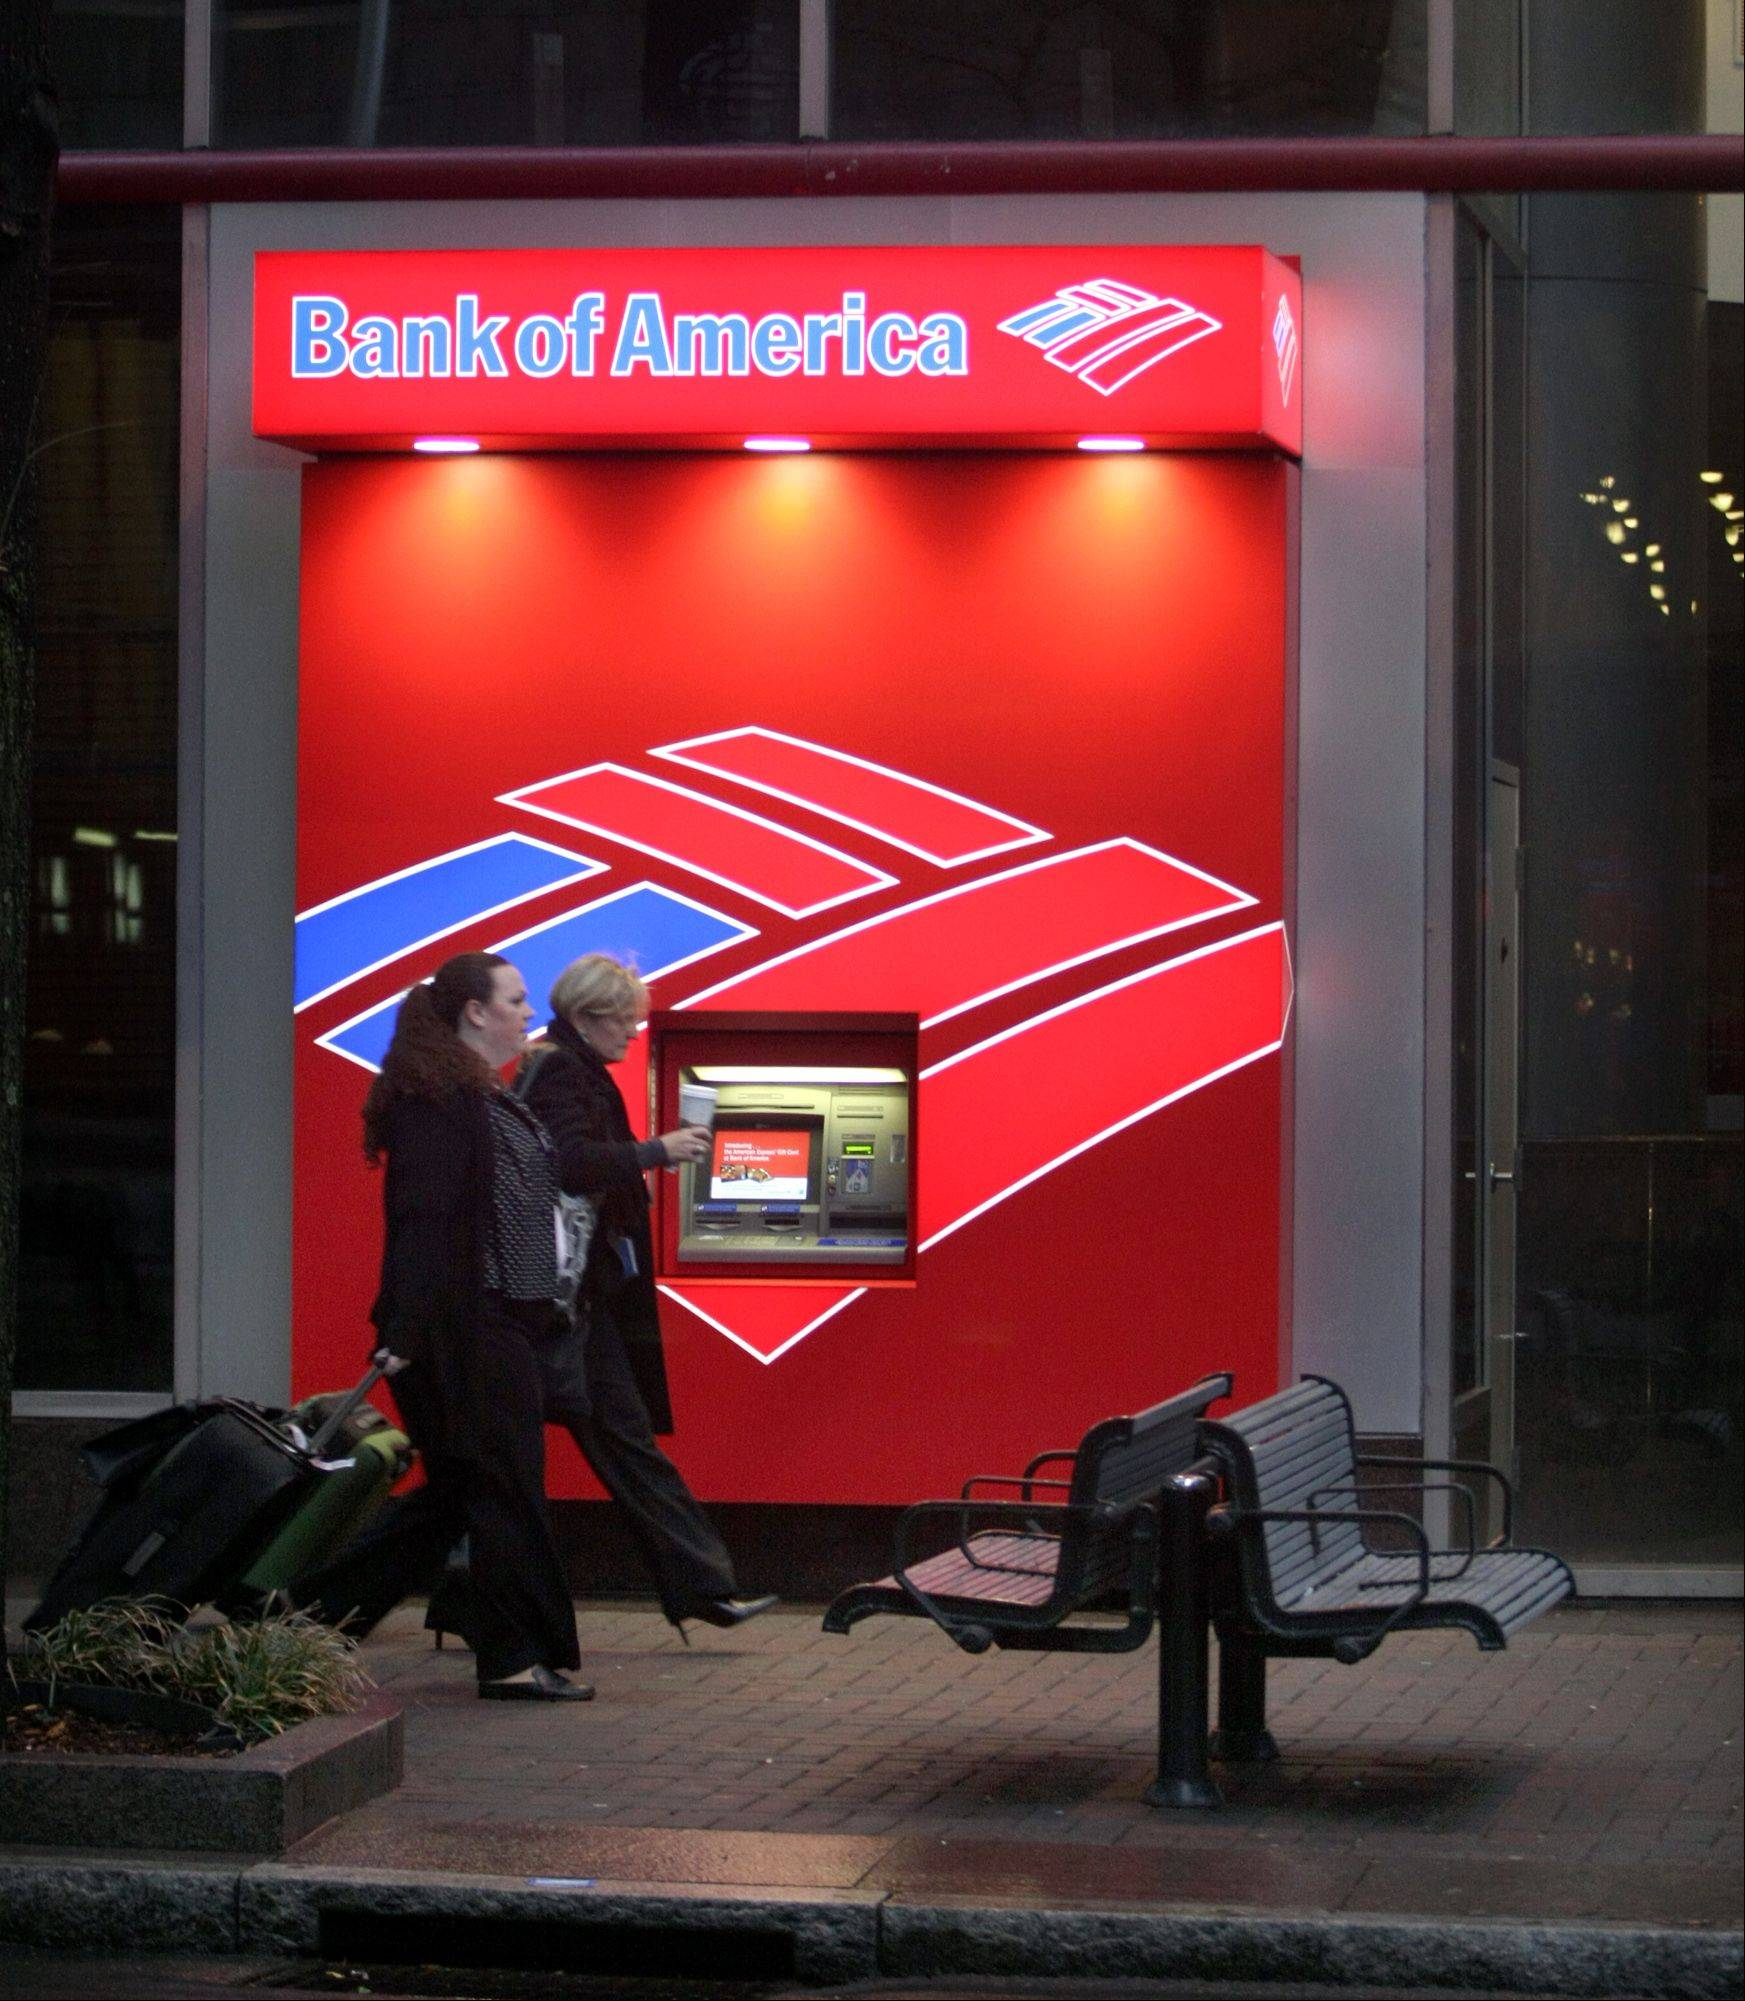 Bank of America is cutting thousands jobs as it responds to changes in the housing market, echoing moves by other banks.